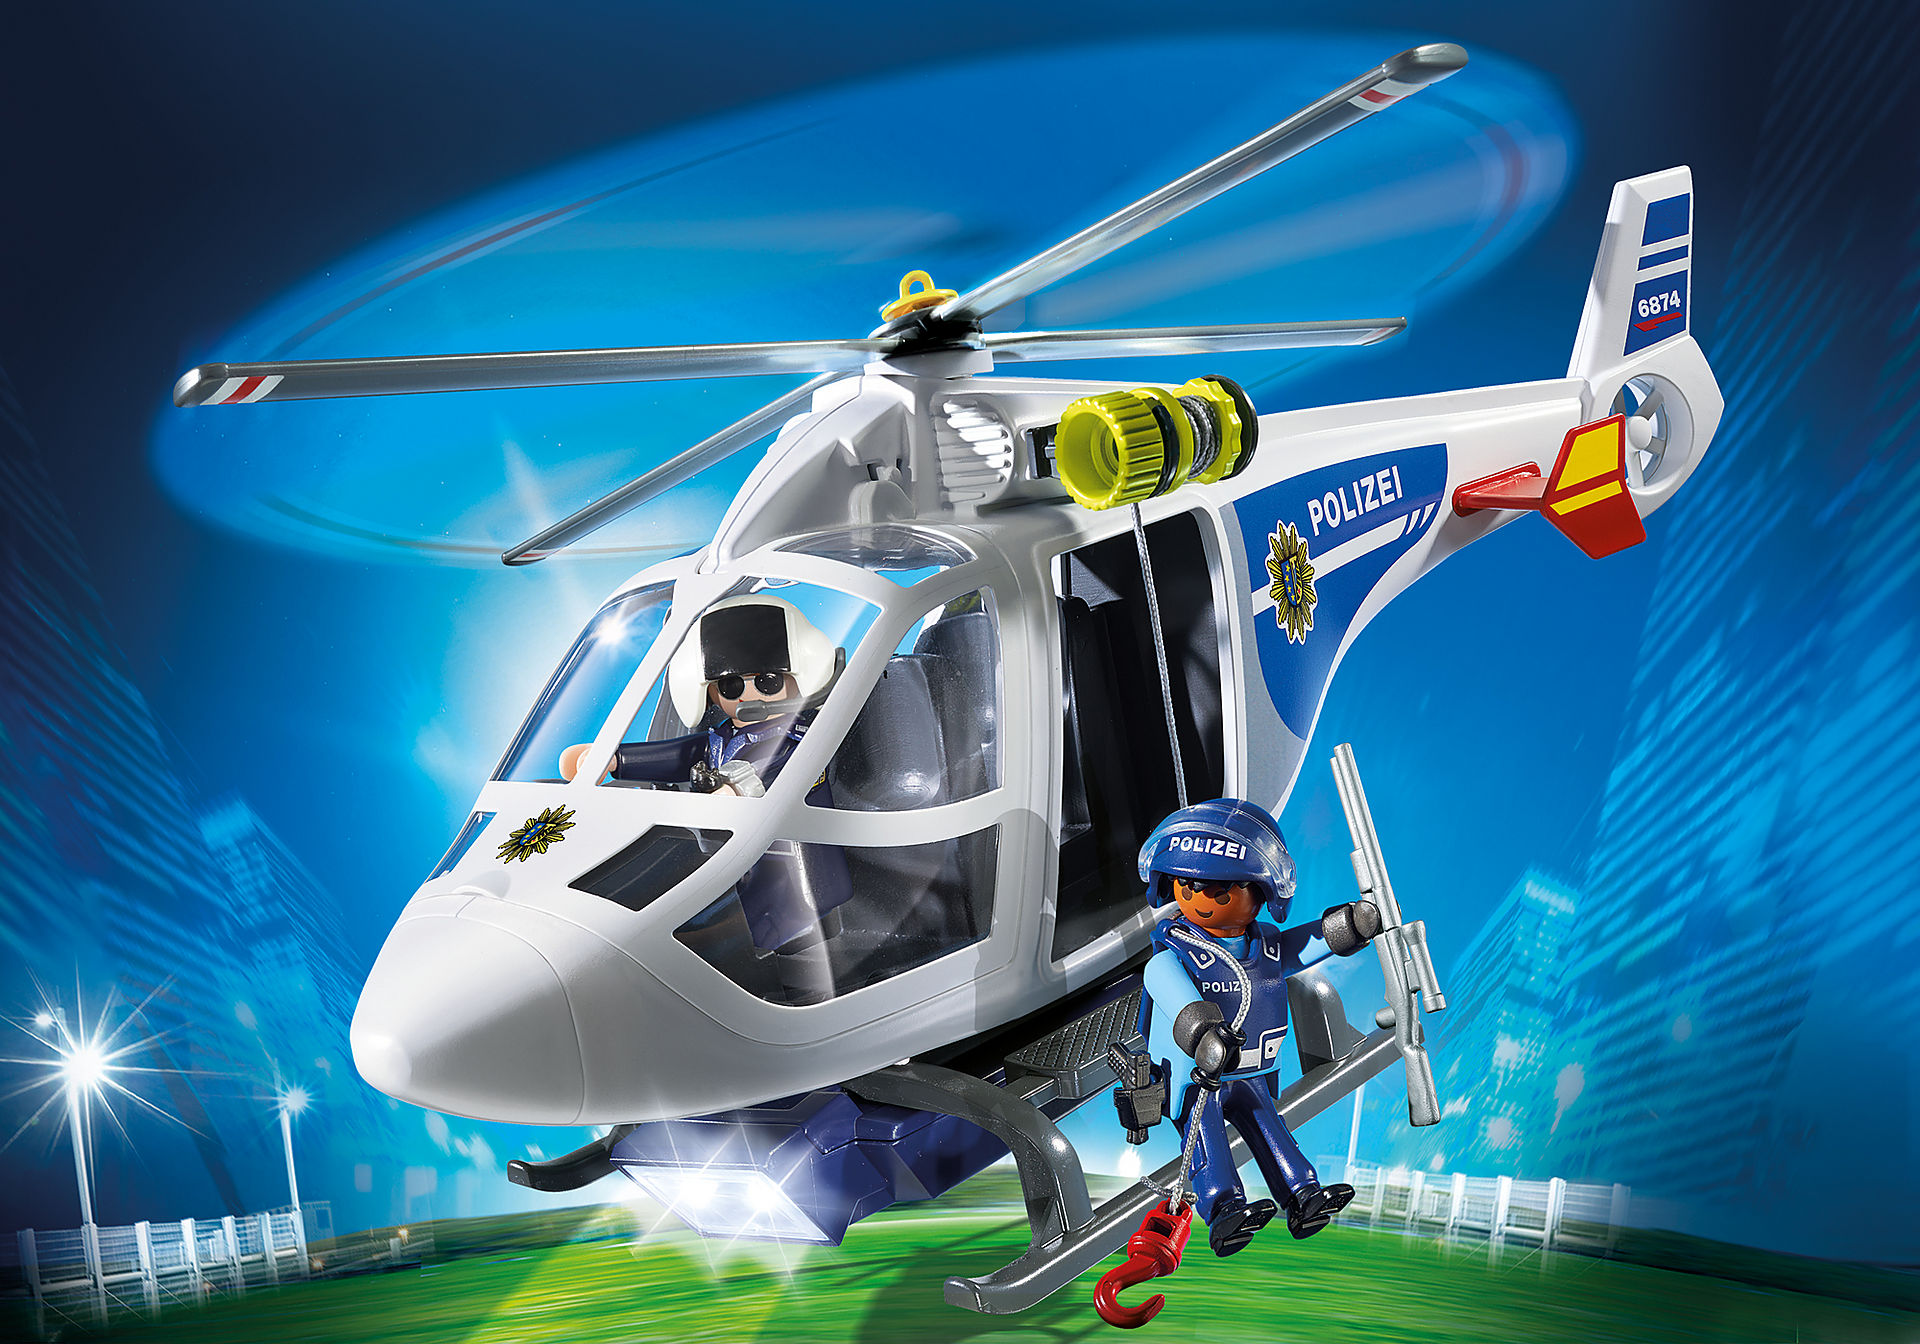 http://media.playmobil.com/i/playmobil/6874_product_detail/Polizei-Helikopter mit LED-Suchscheinwerfer